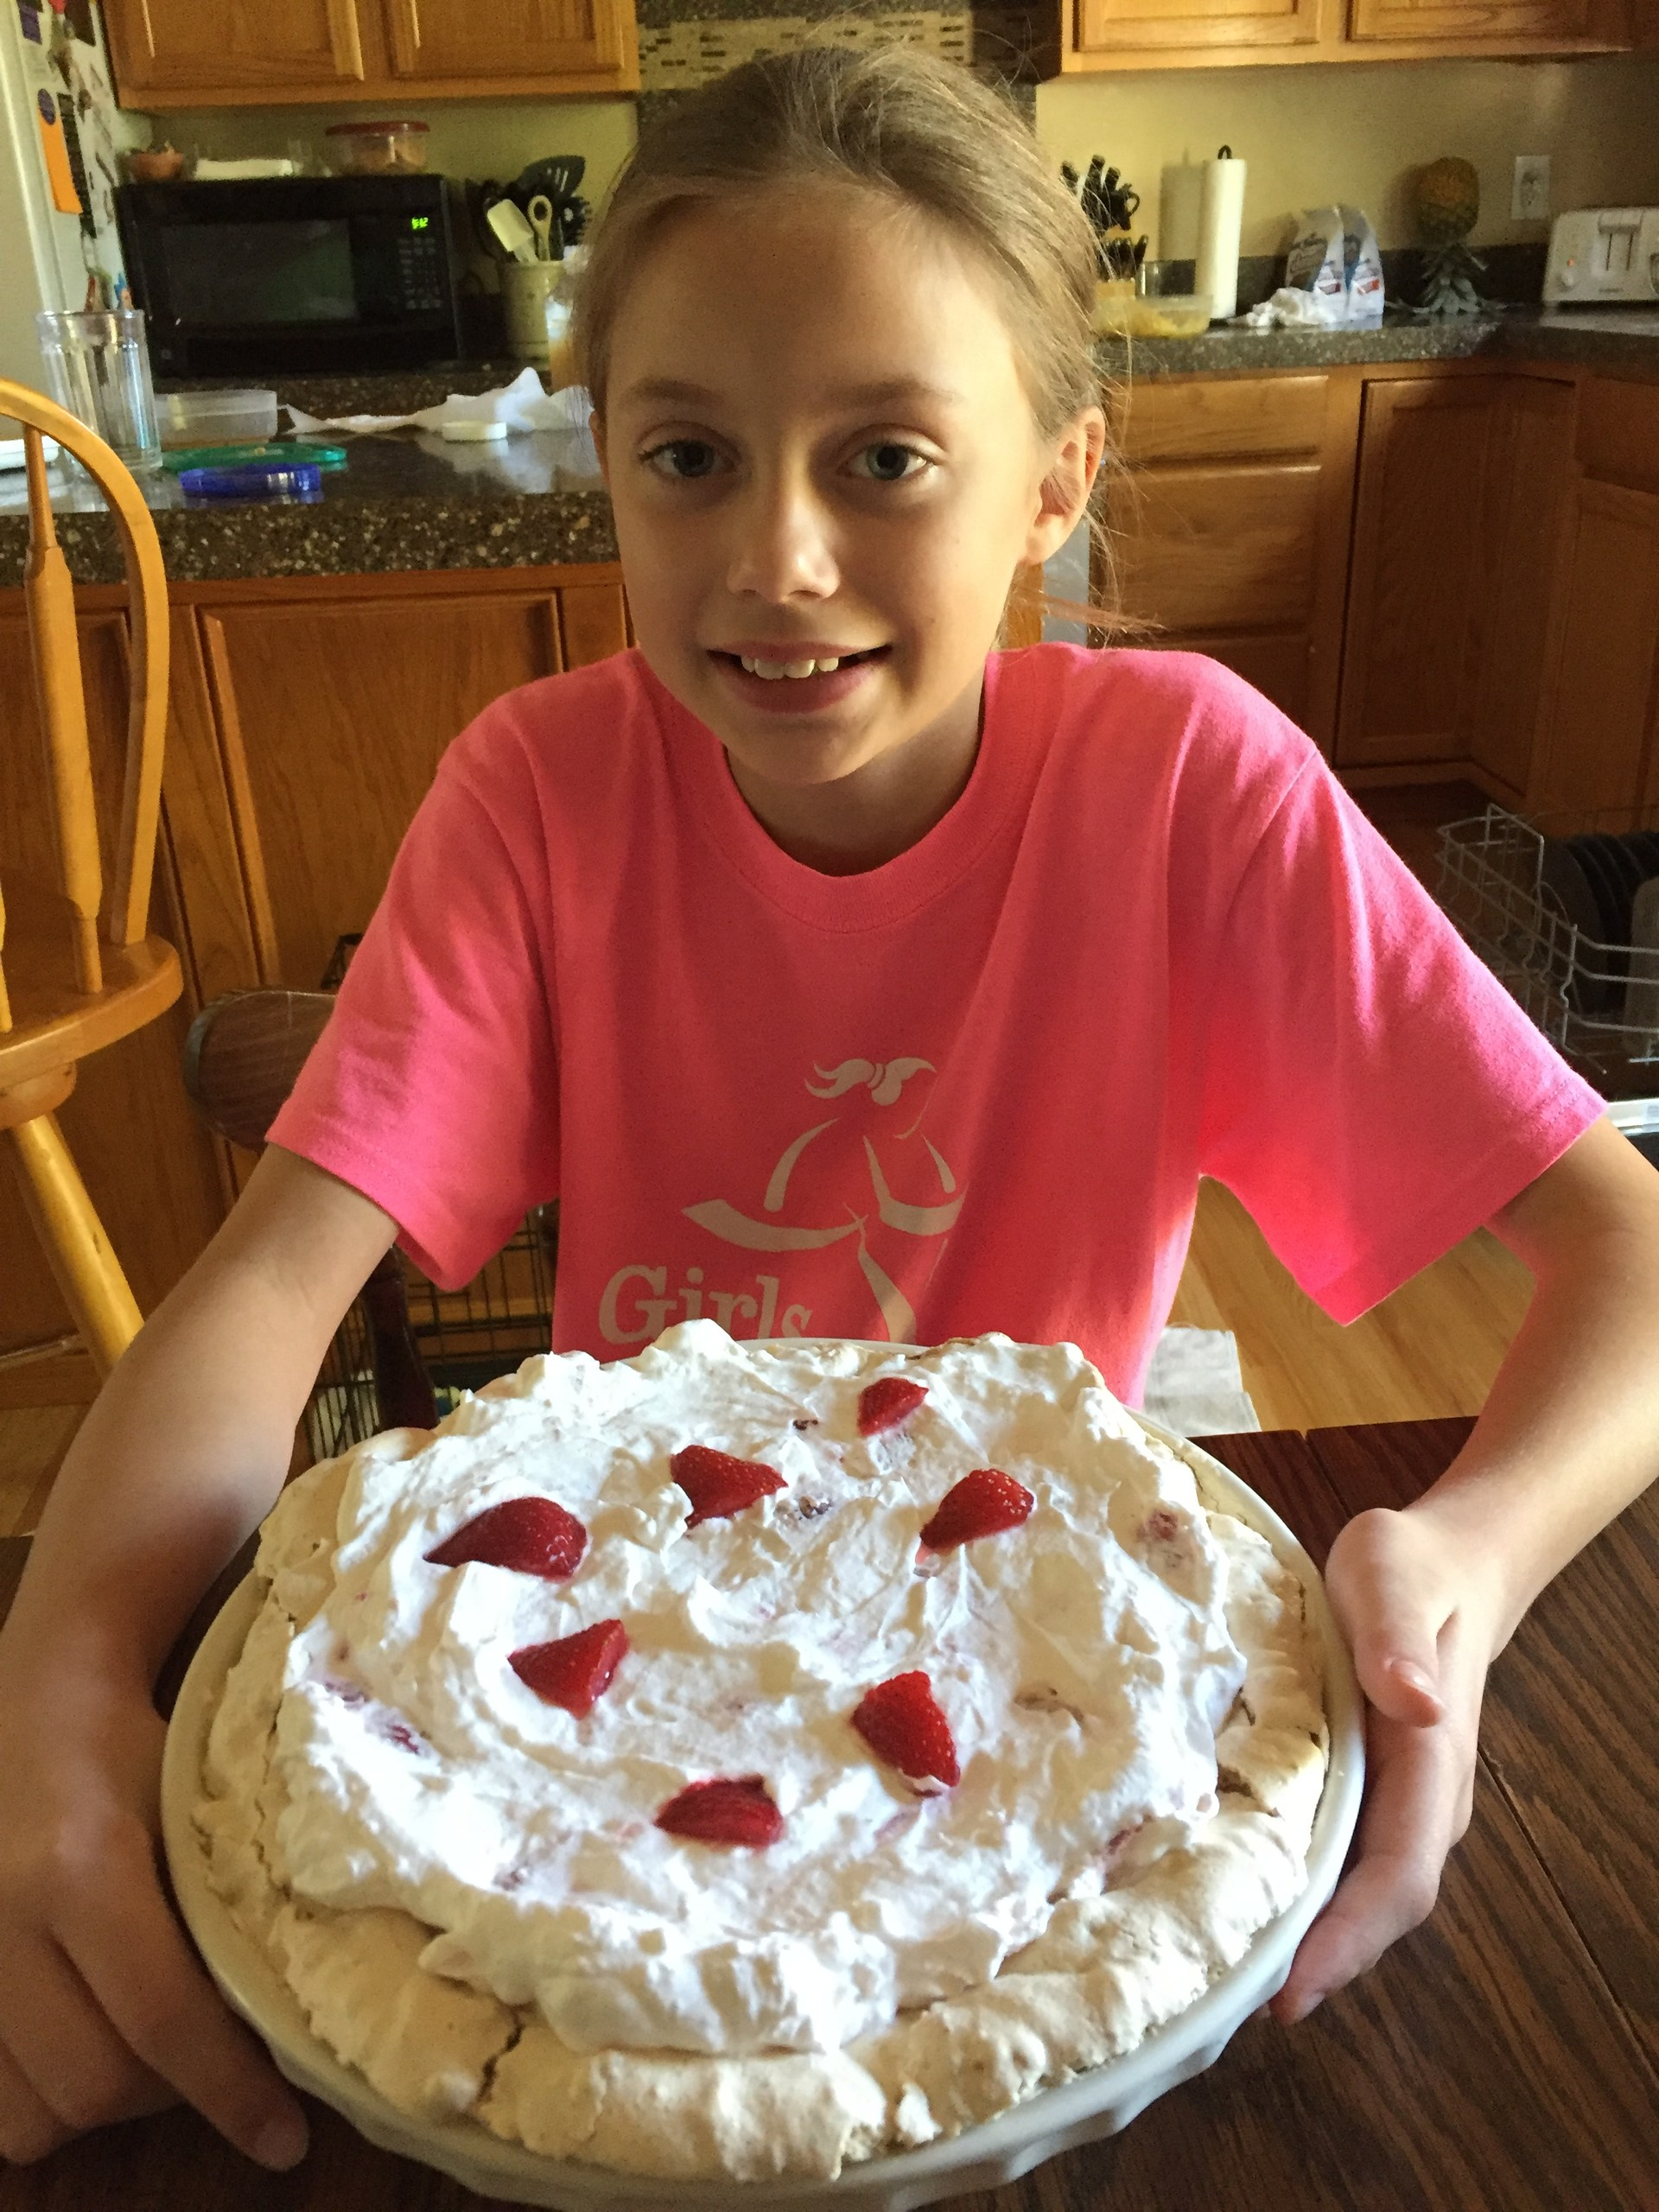 My daughter loves to bake!